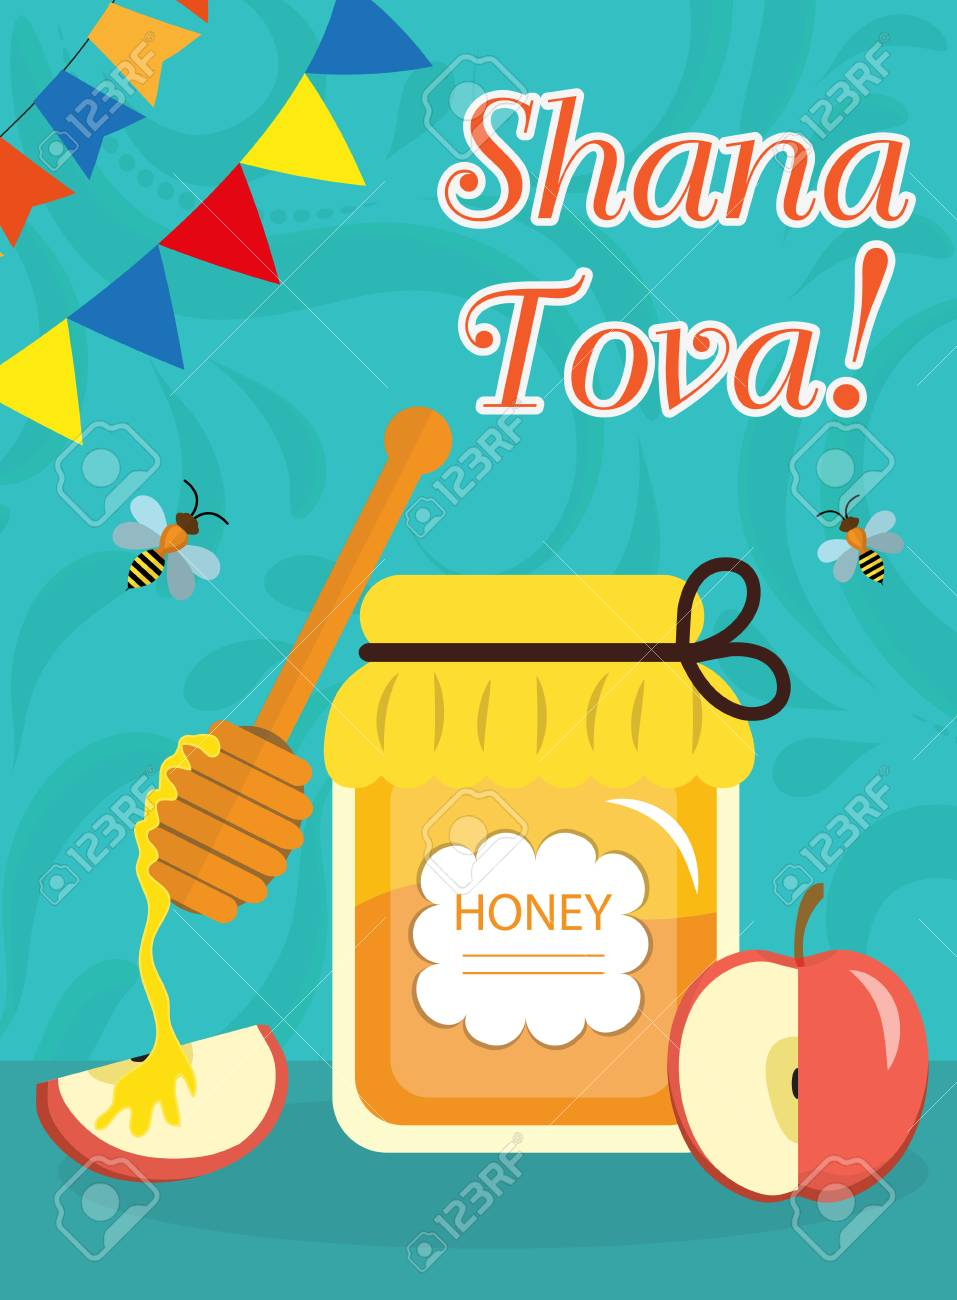 Rosh hashanah poster flyer invitation greeting card shana rosh hashanah poster flyer invitation greeting card shana tova is a template kristyandbryce Choice Image